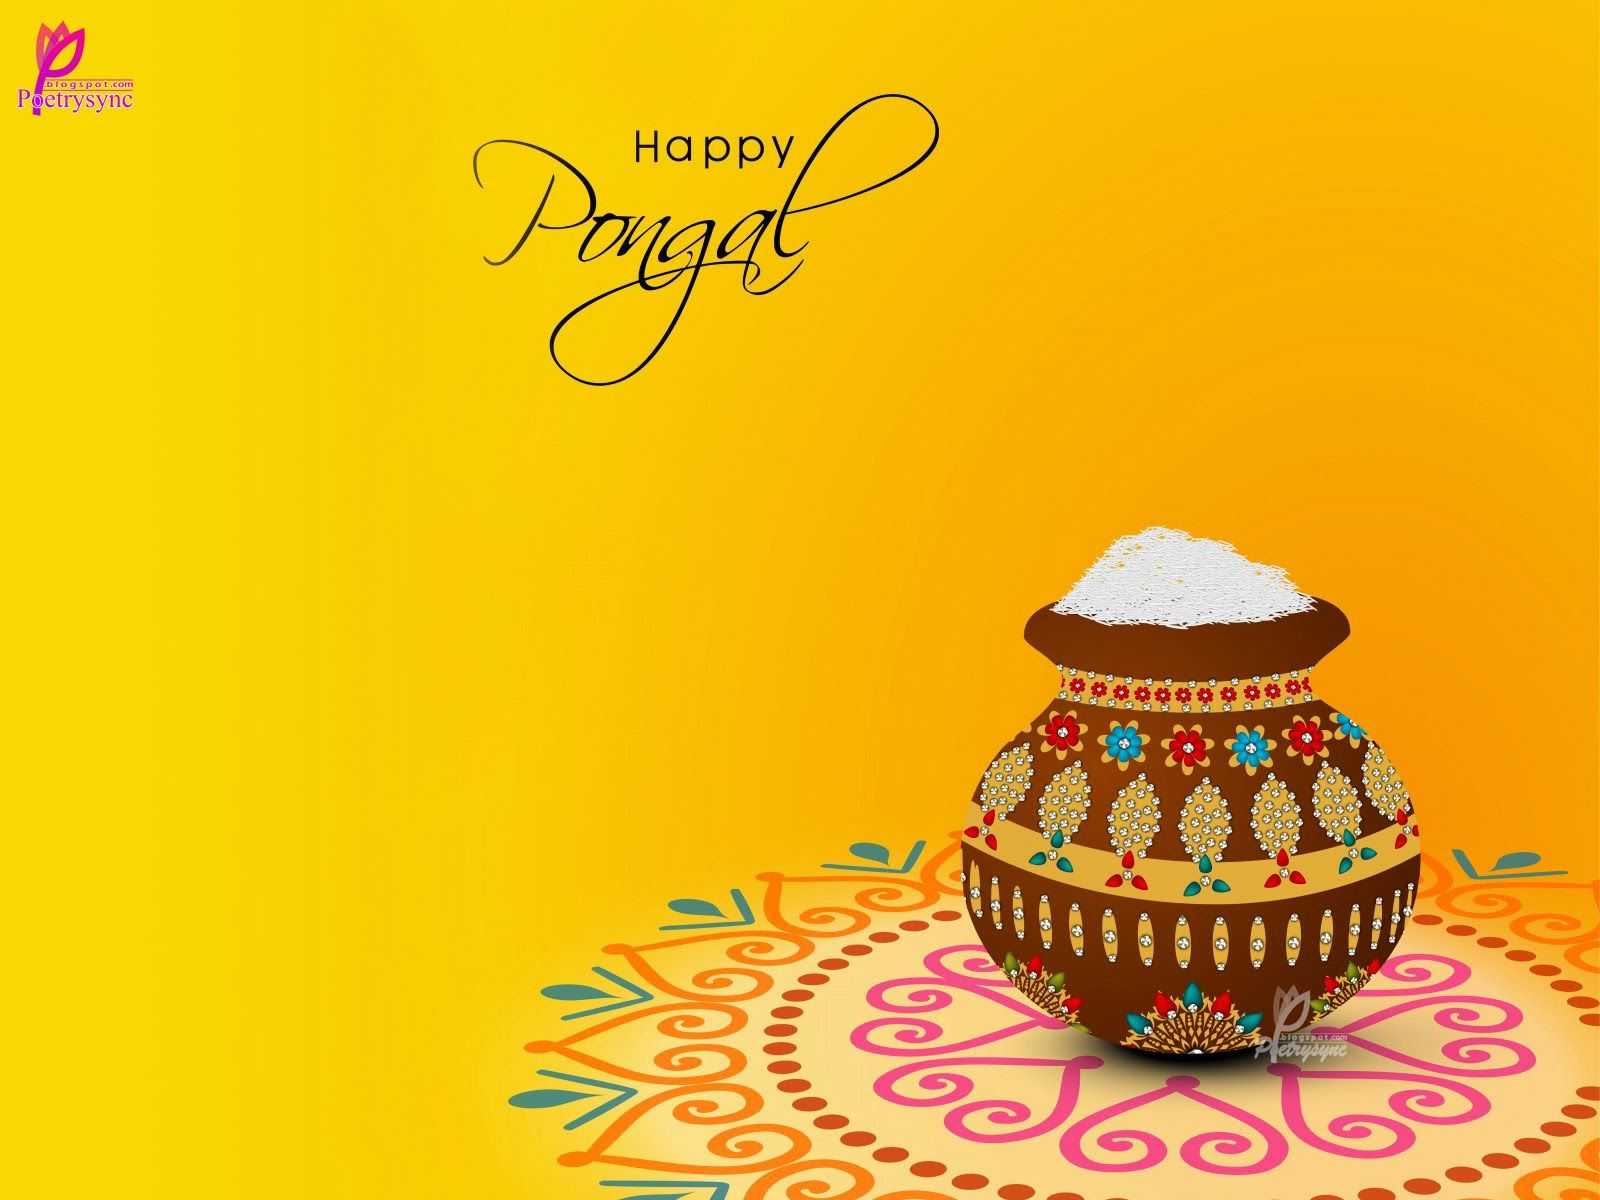 Beautiful pongal festival wishes card wallpaper pongal wishes beautiful pongal festival wishes card wallpaper kristyandbryce Images